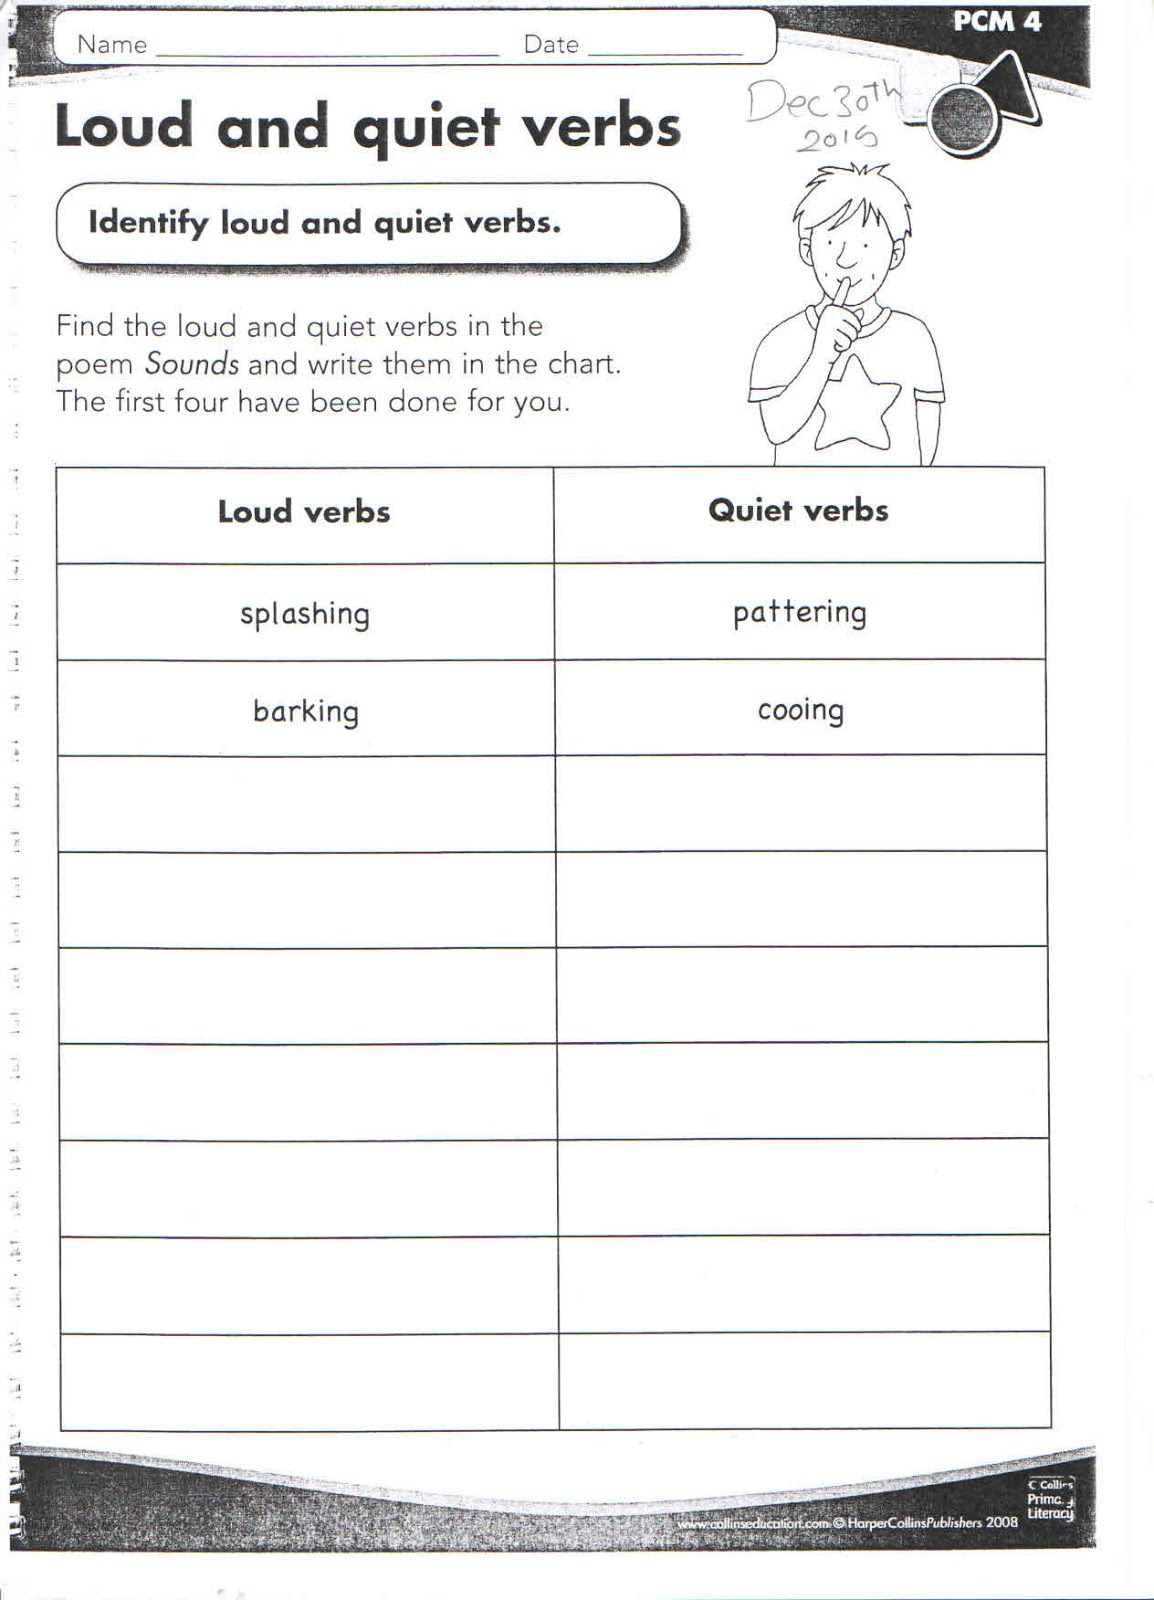 Worksheet For Be Quiet : Year fantasy loud and quiet verbs